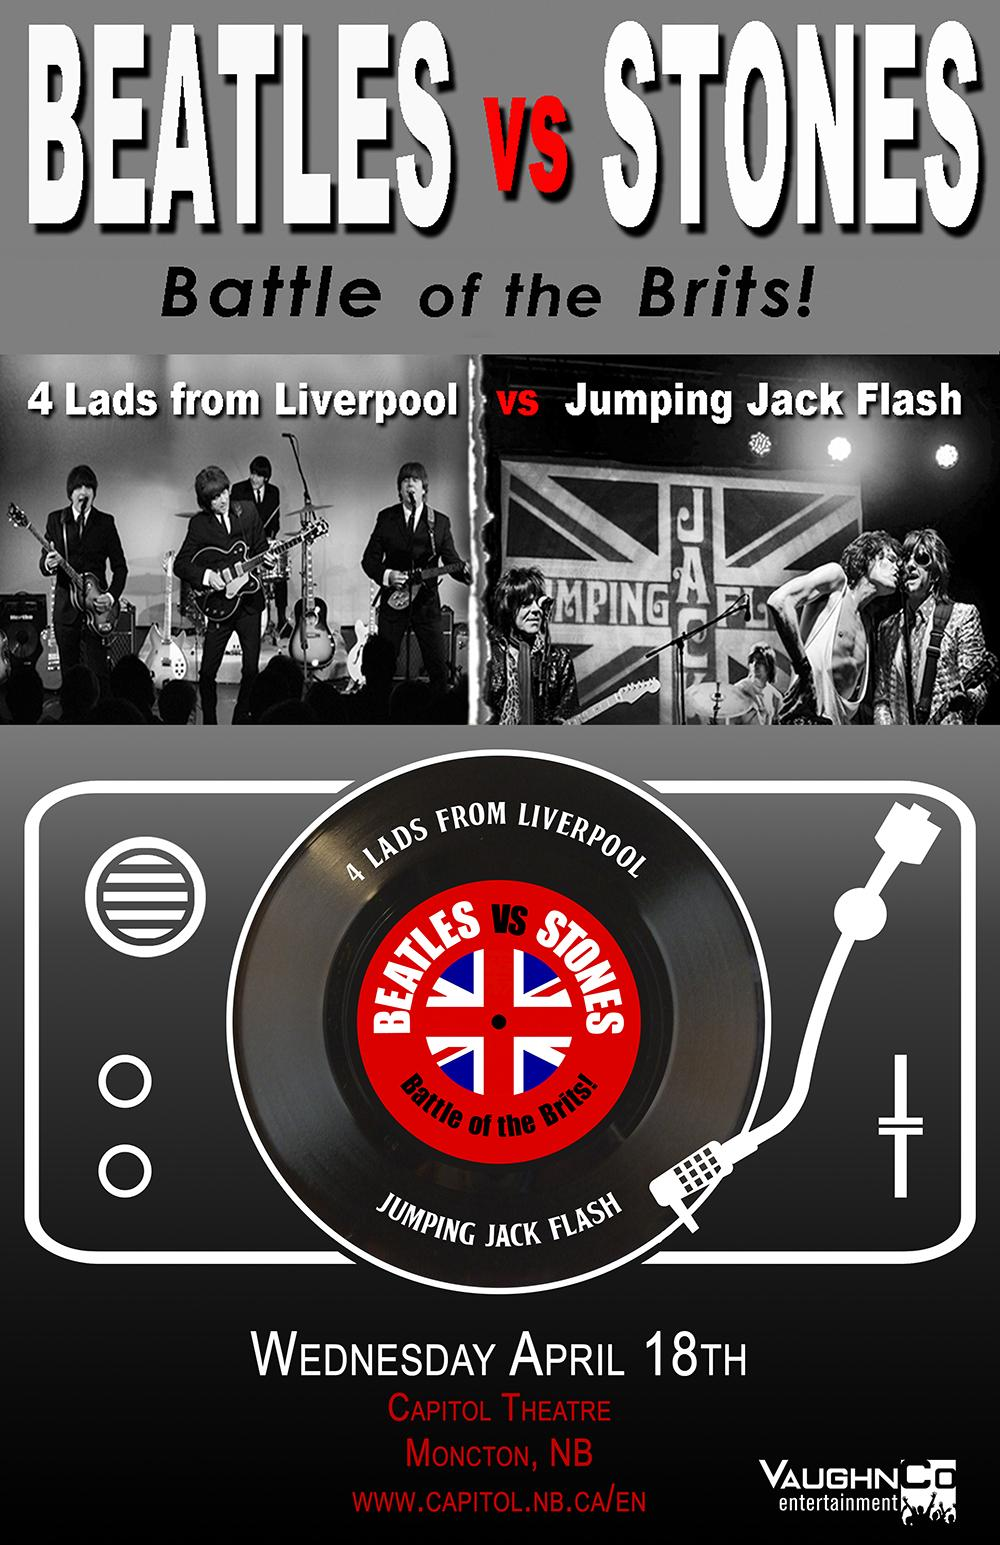 The Ultimate Beatles vs Stones Tribute Show Image 1